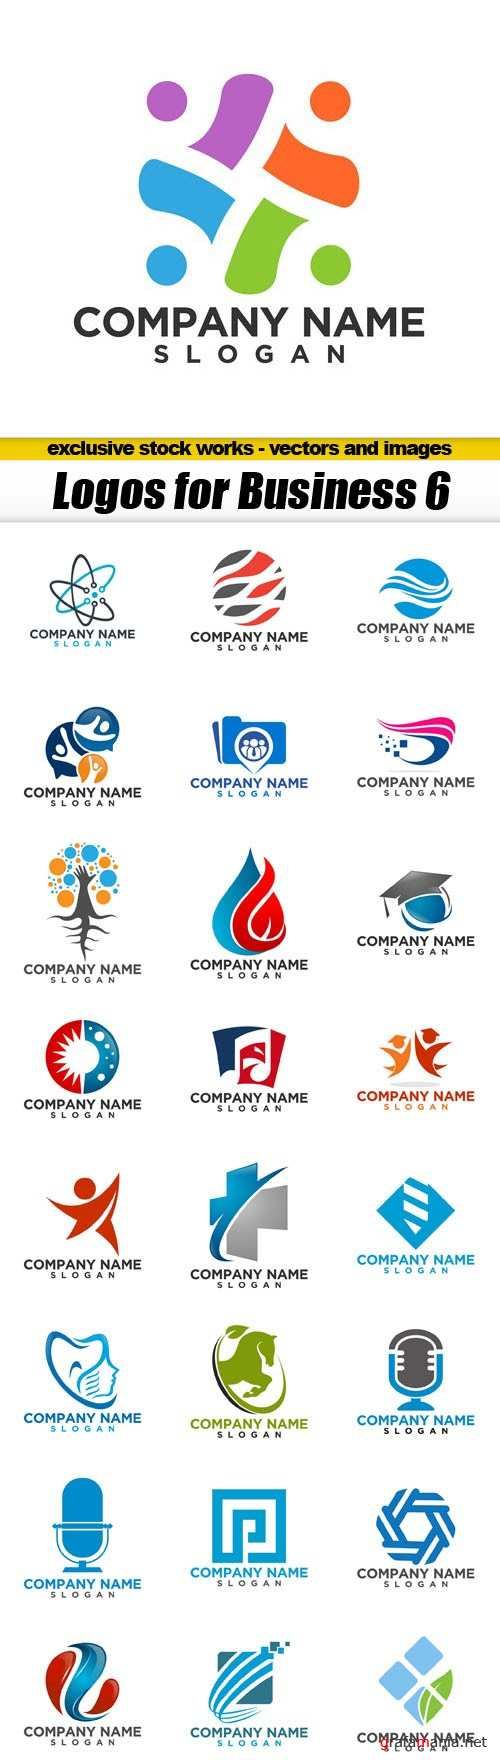 Logos for Business 6 - 25xEPS